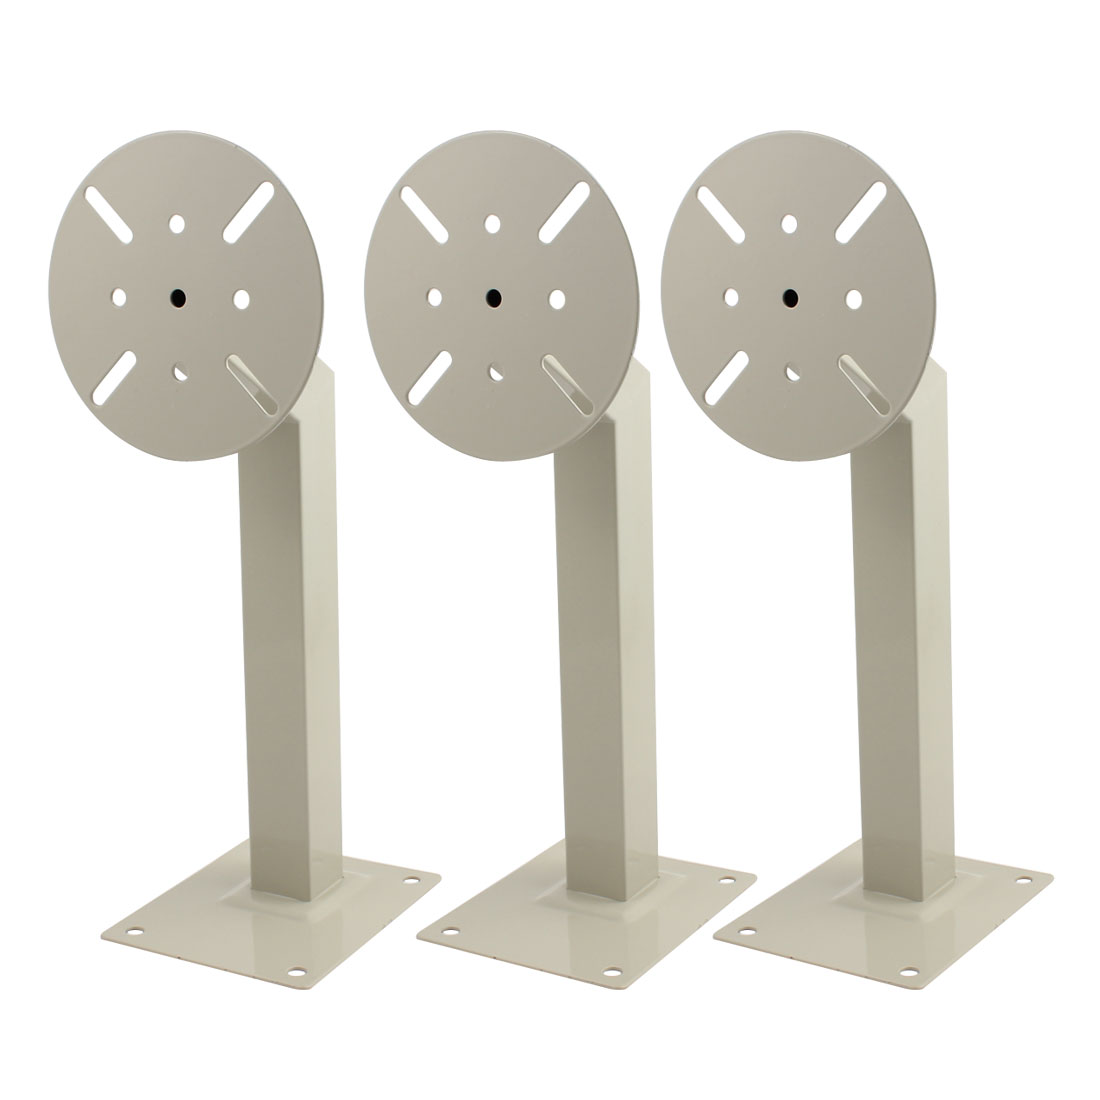 15.5cm x 12.5cm Base 40cm High Wall Mounting CCTV Security Camera Stand Bracket 3Pcs